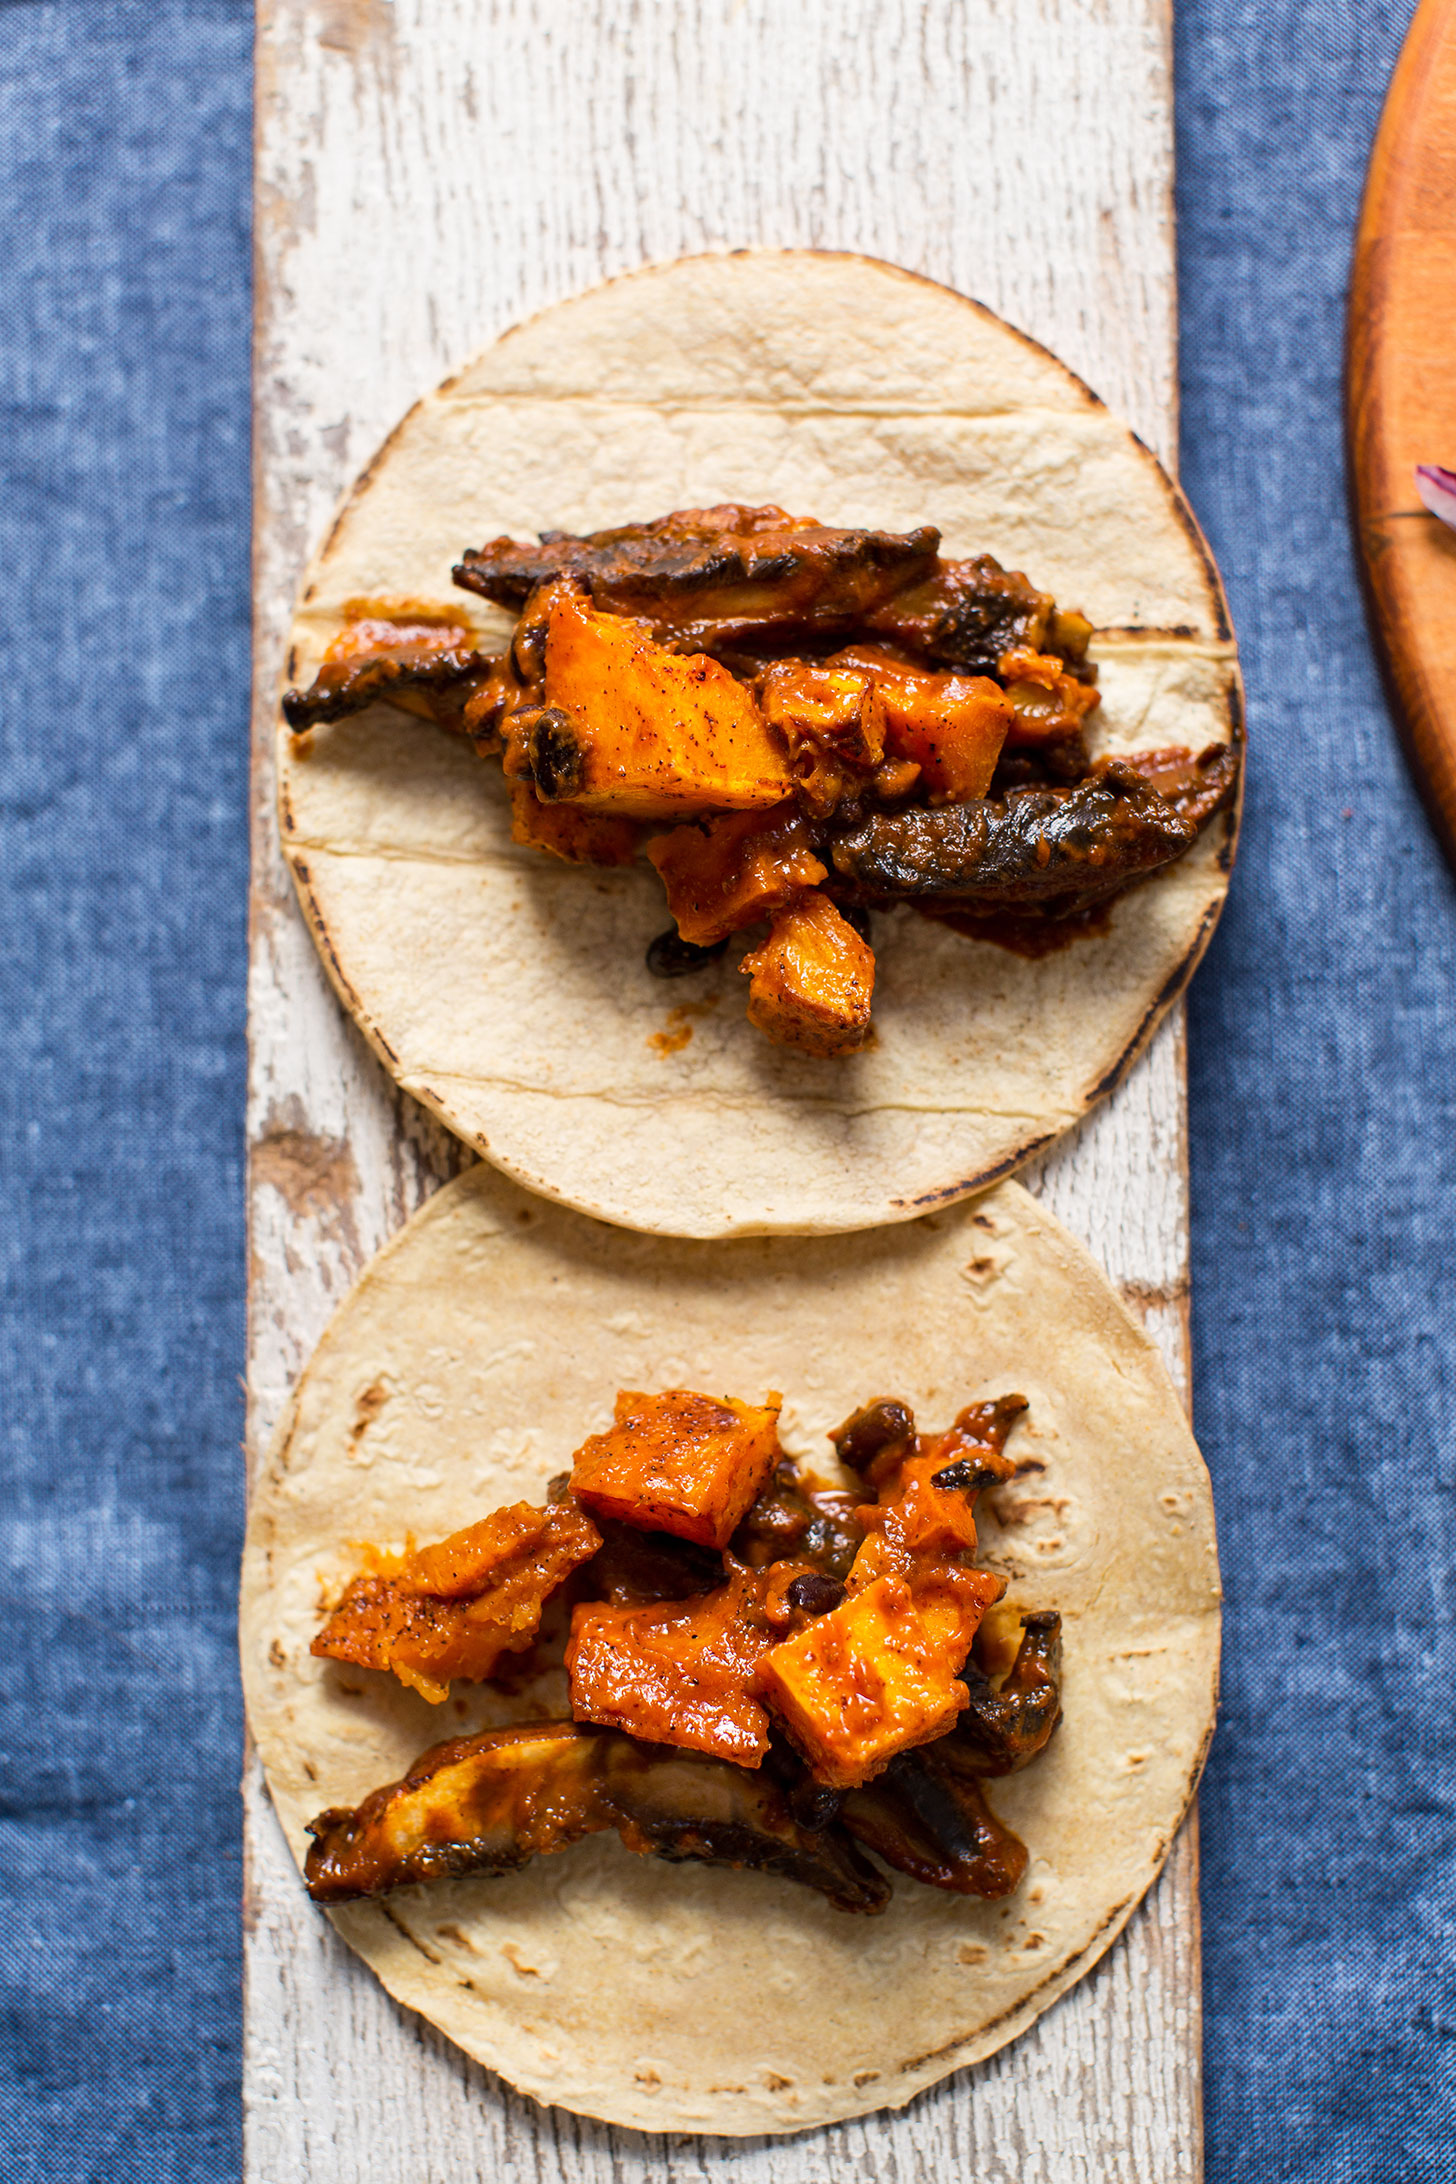 Wood plank displaying saucy gluten-free vegan Butternut Squash Tacos